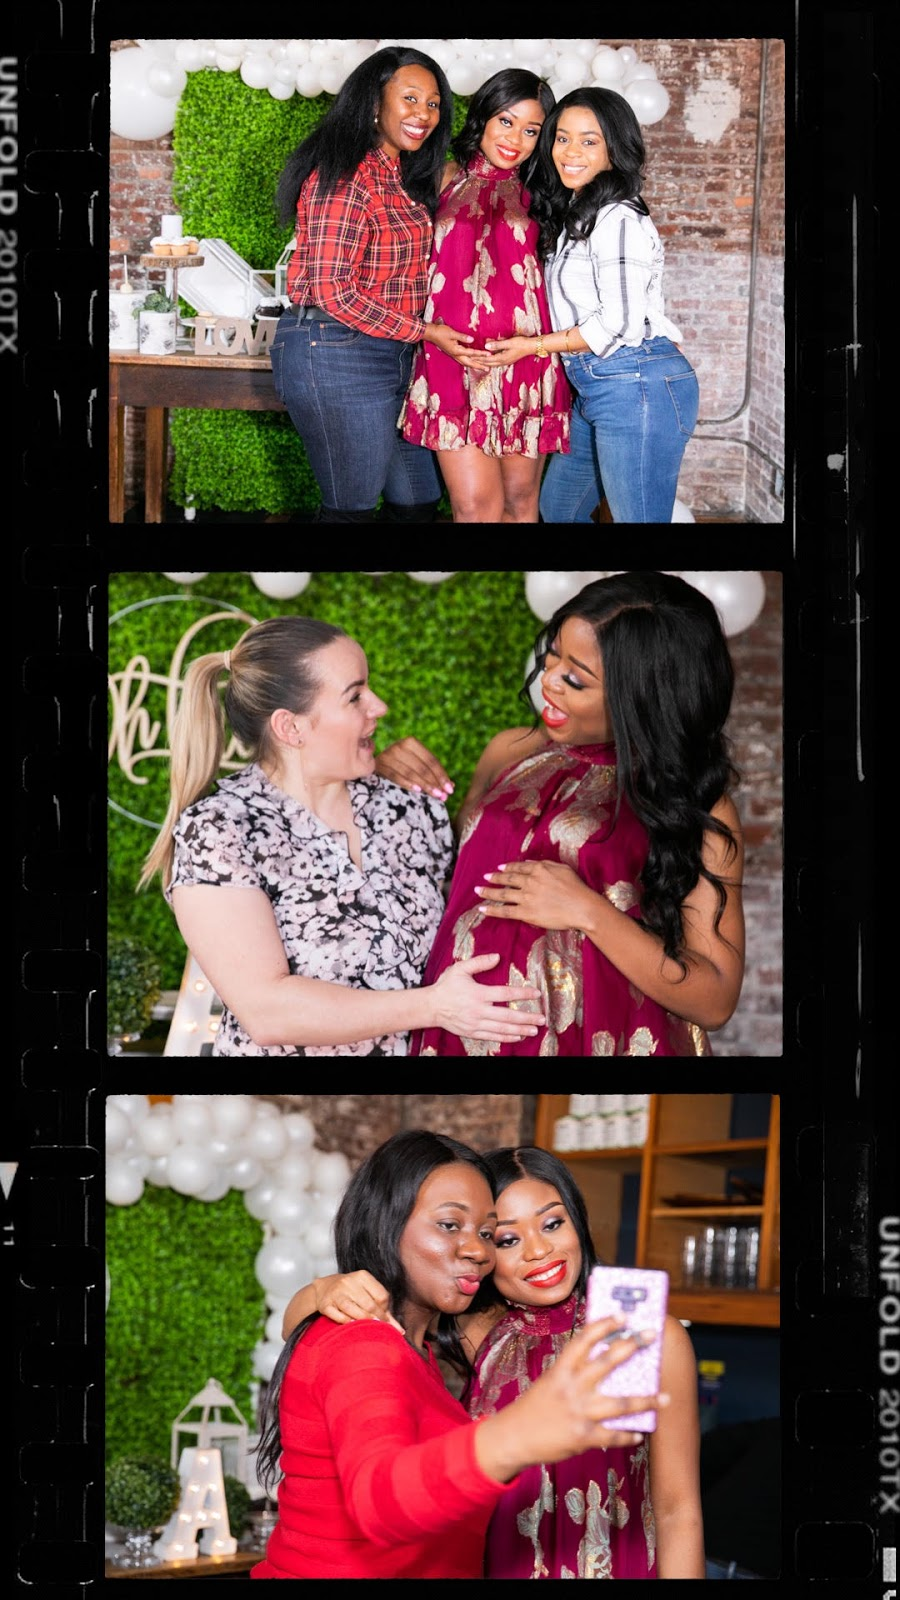 Stella-Adewunmi-of-Jadore-Fashion-share-baby-shower-outfit-and-friends